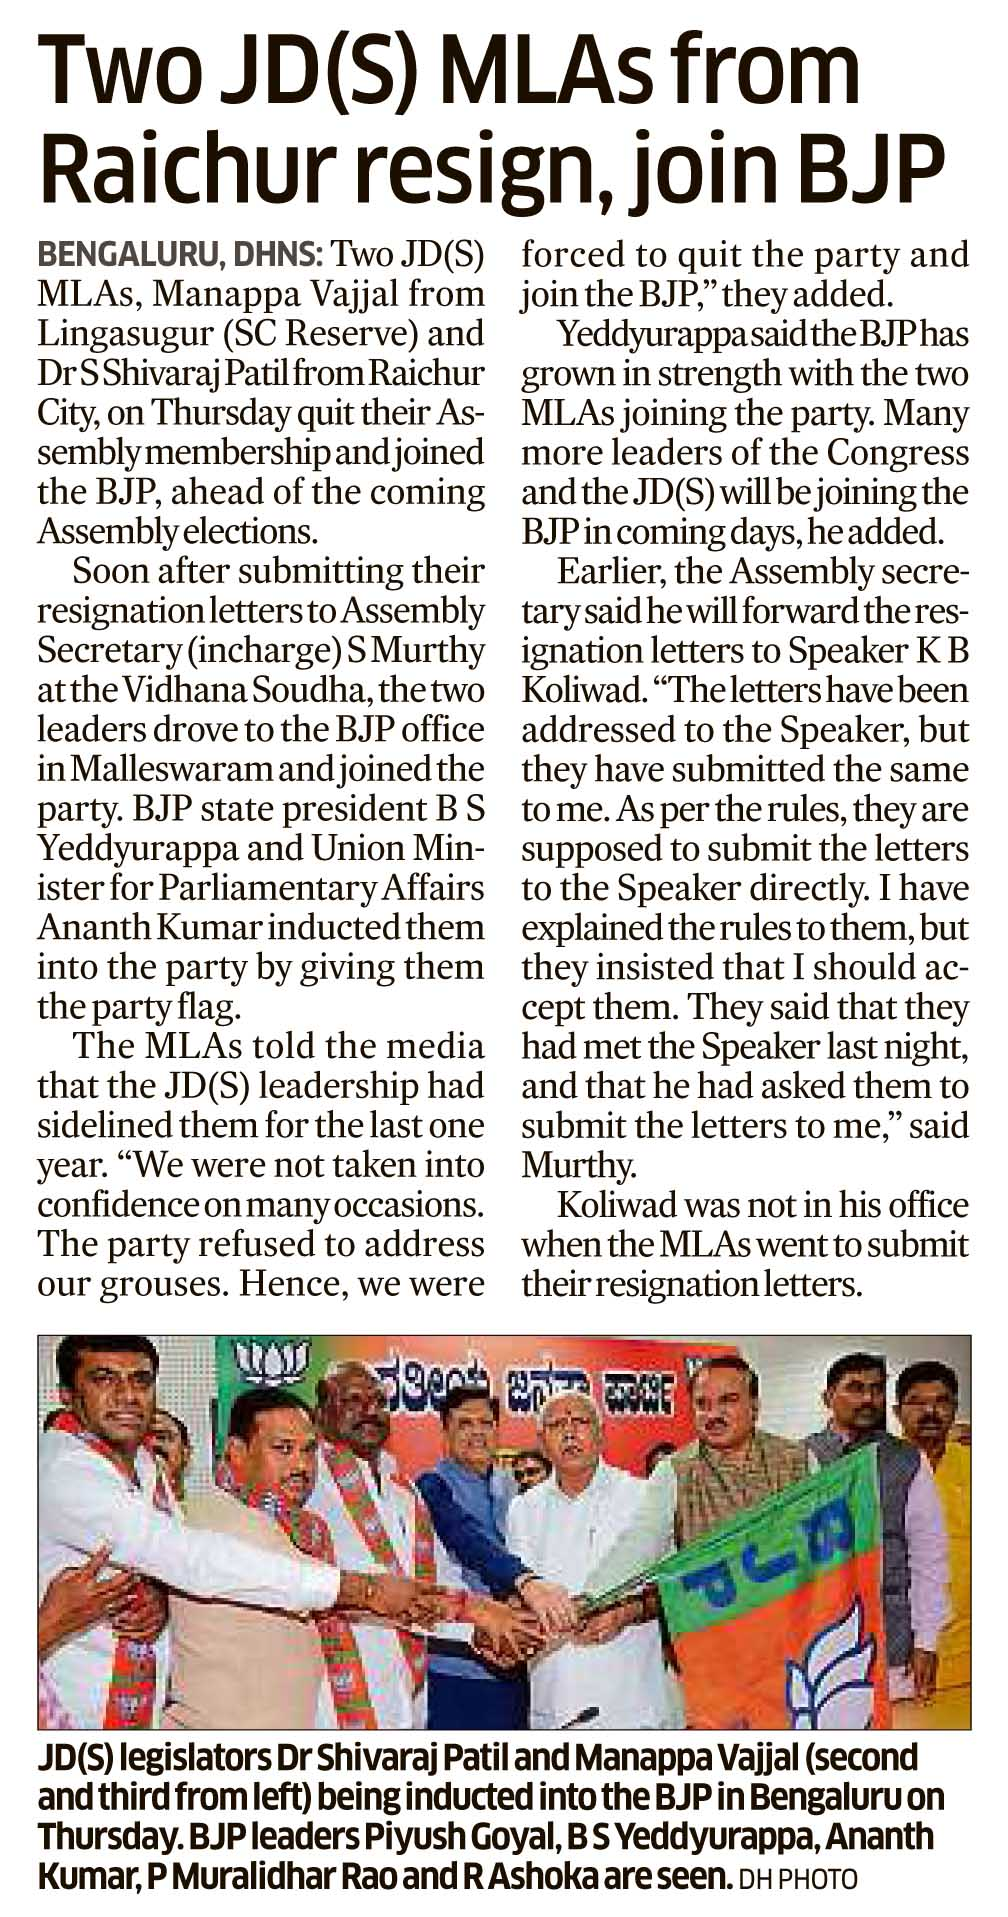 Tow JD(S) MLAs from Raichur resign, join BJP